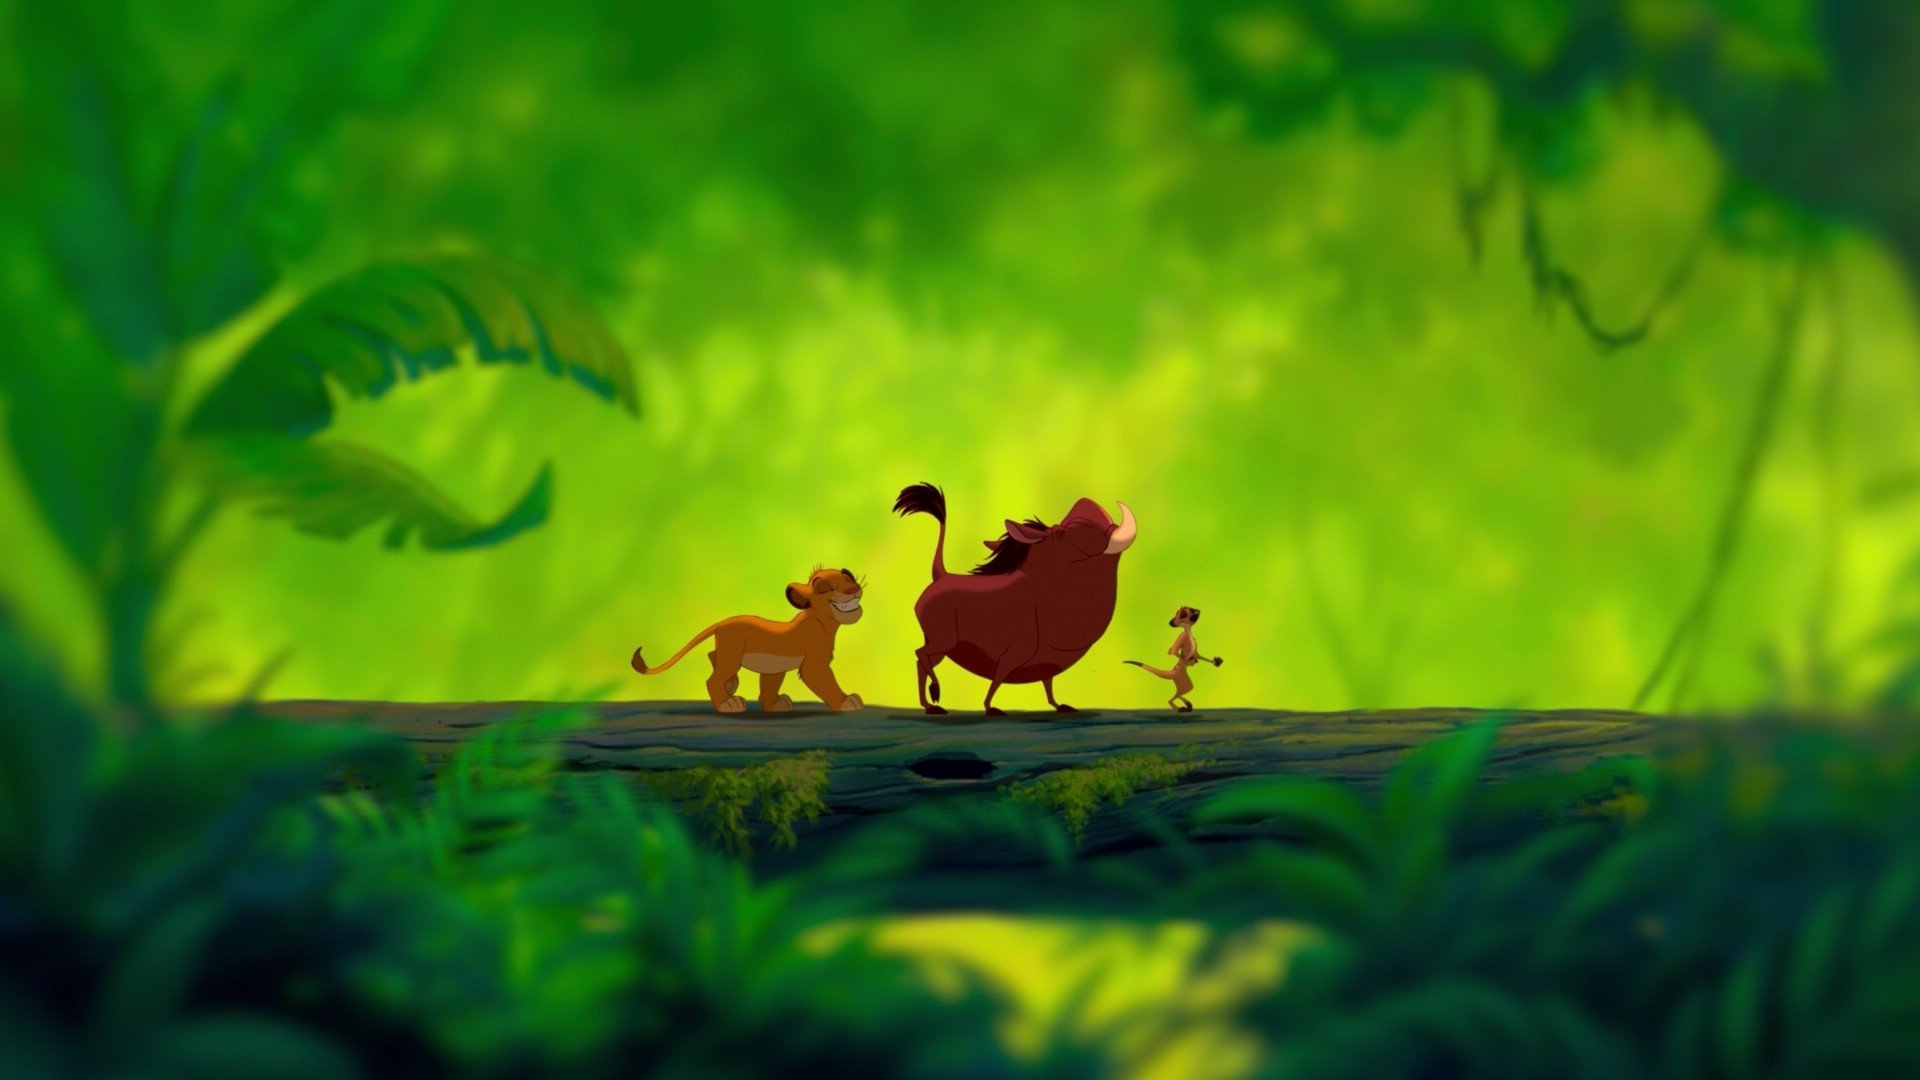 HD Wallpapers Lion King